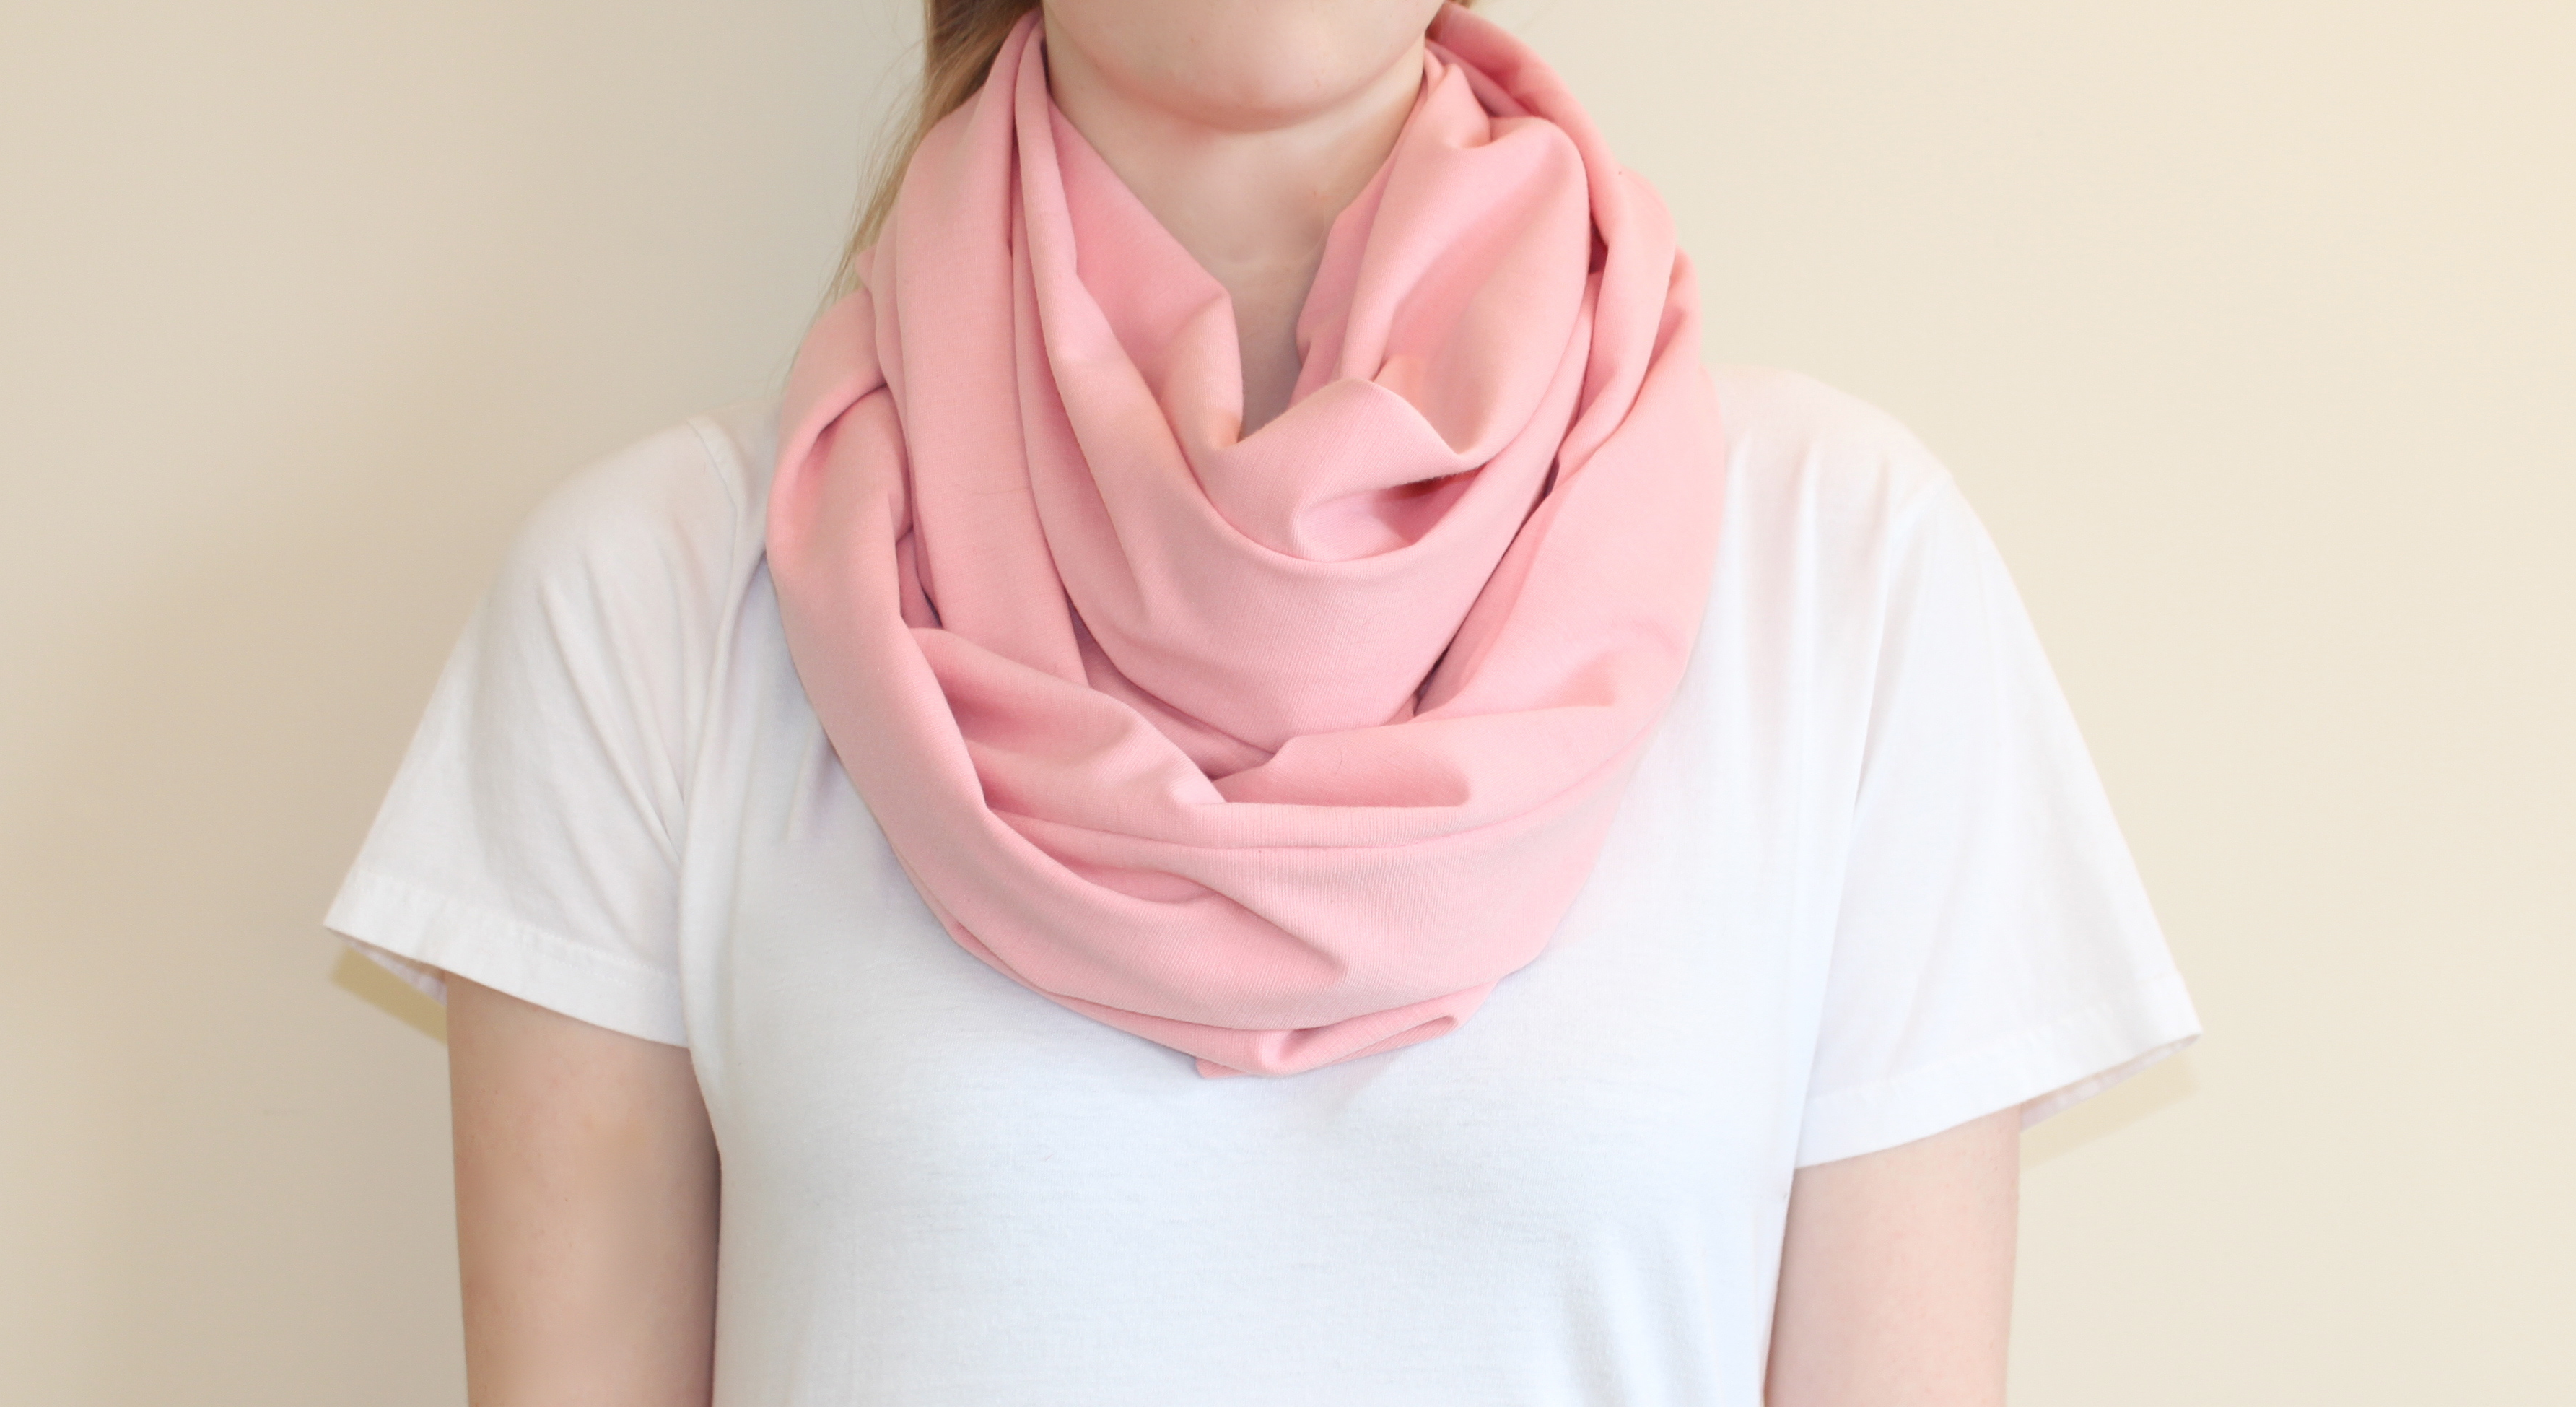 Soft Chevron Printed Sheer Infinity Scarf in Contrasting. This scarf is a great addition to you collection of fashion accessories, brings you simple and effortless style.